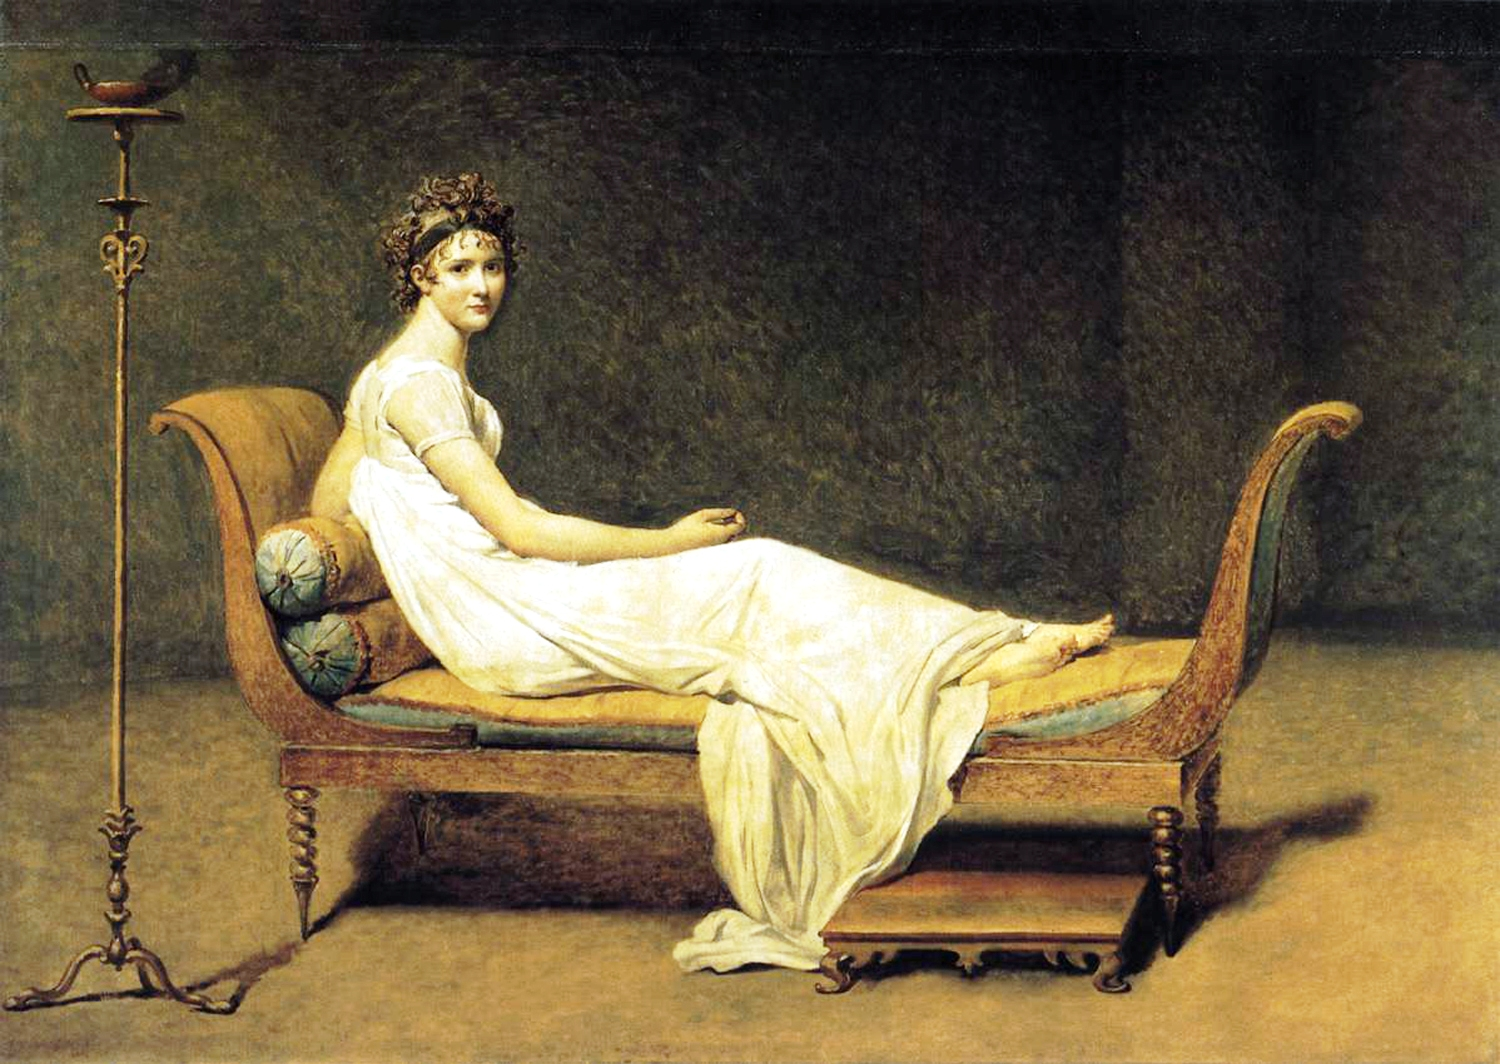 http://upload.wikimedia.org/wikipedia/commons/1/1e/Madame_R%C3%A9camier_painted_by_Jacques-Louis_David_in_1800.jpg